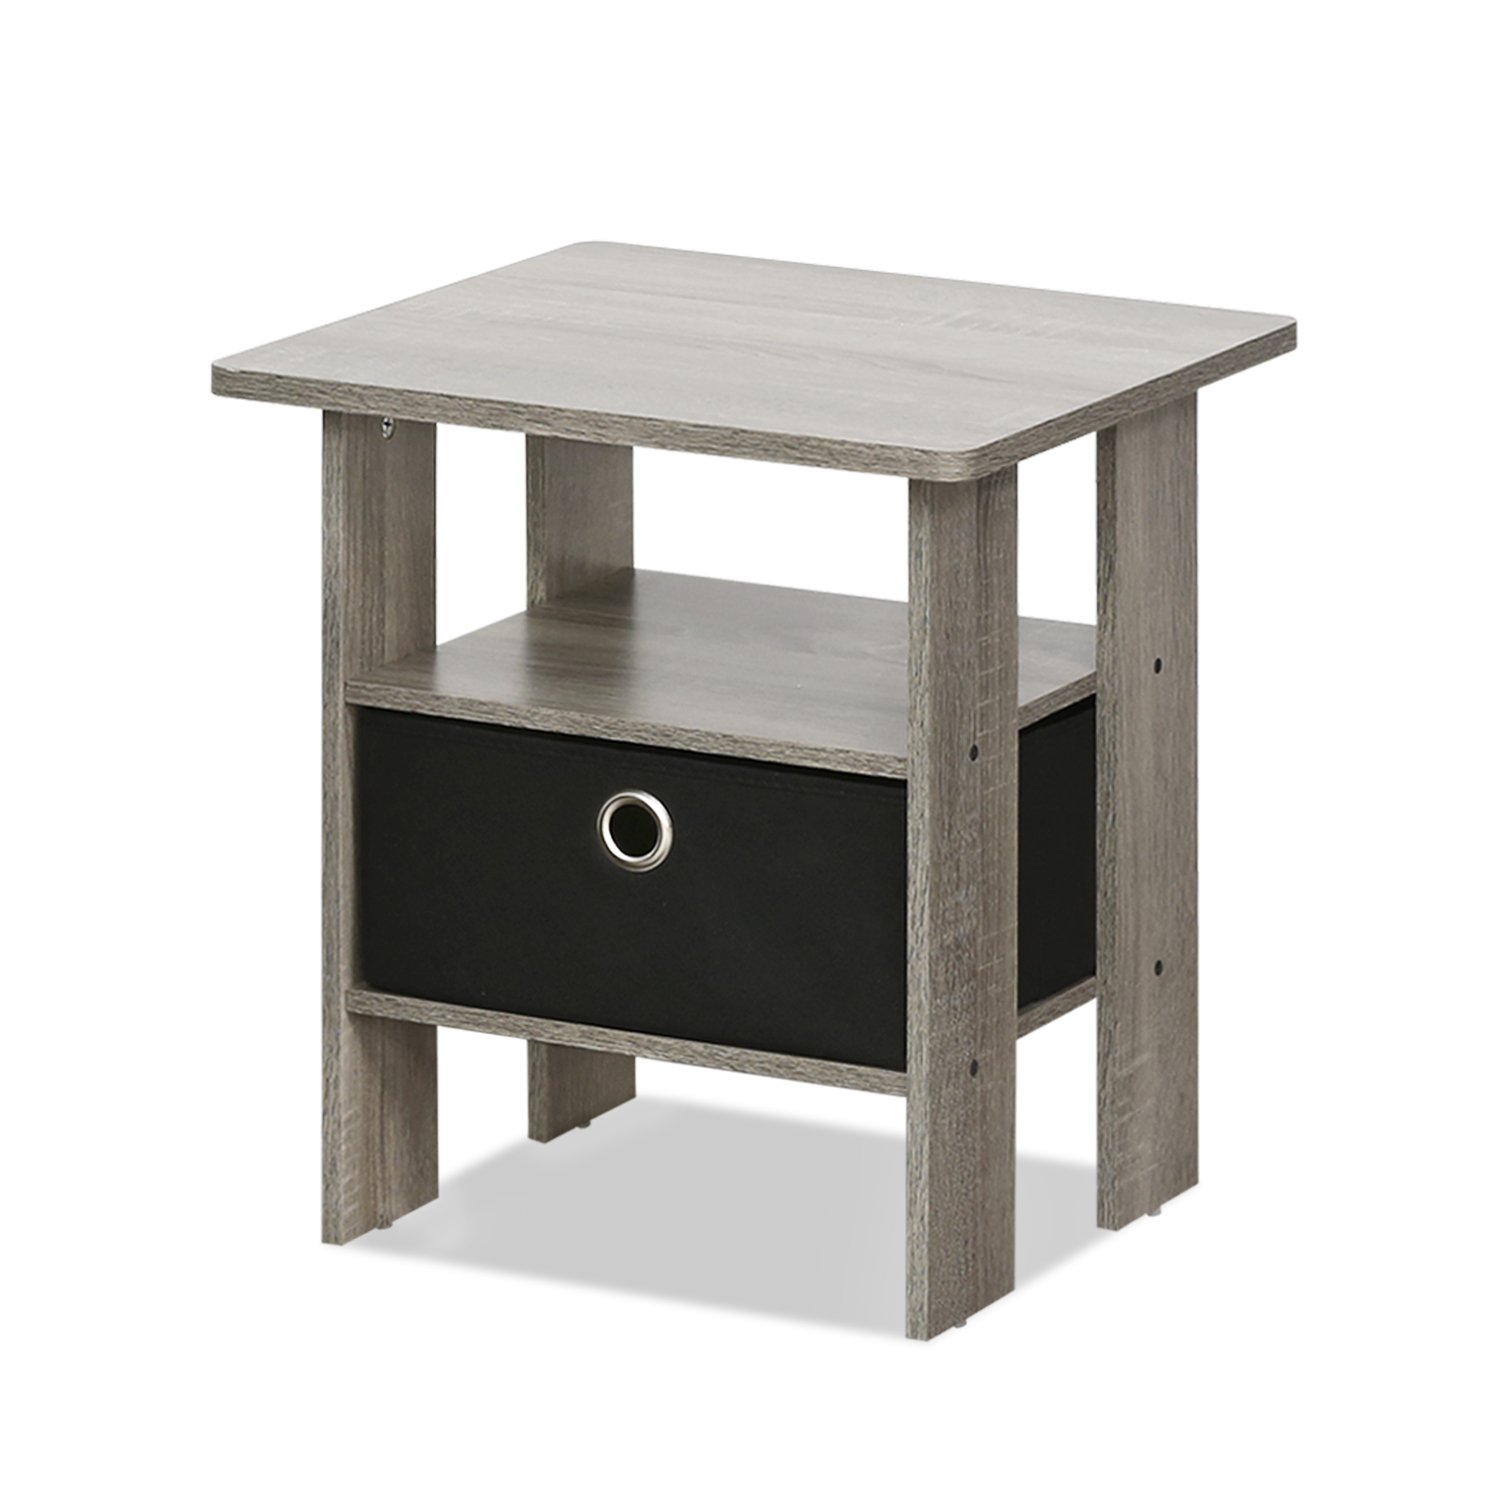 amazon com furinno 11157gyw bk end table bedroom night stand w amazon com furinno 11157gyw bk end table bedroom night stand w bin drawer french oak grey black small kitchen dining